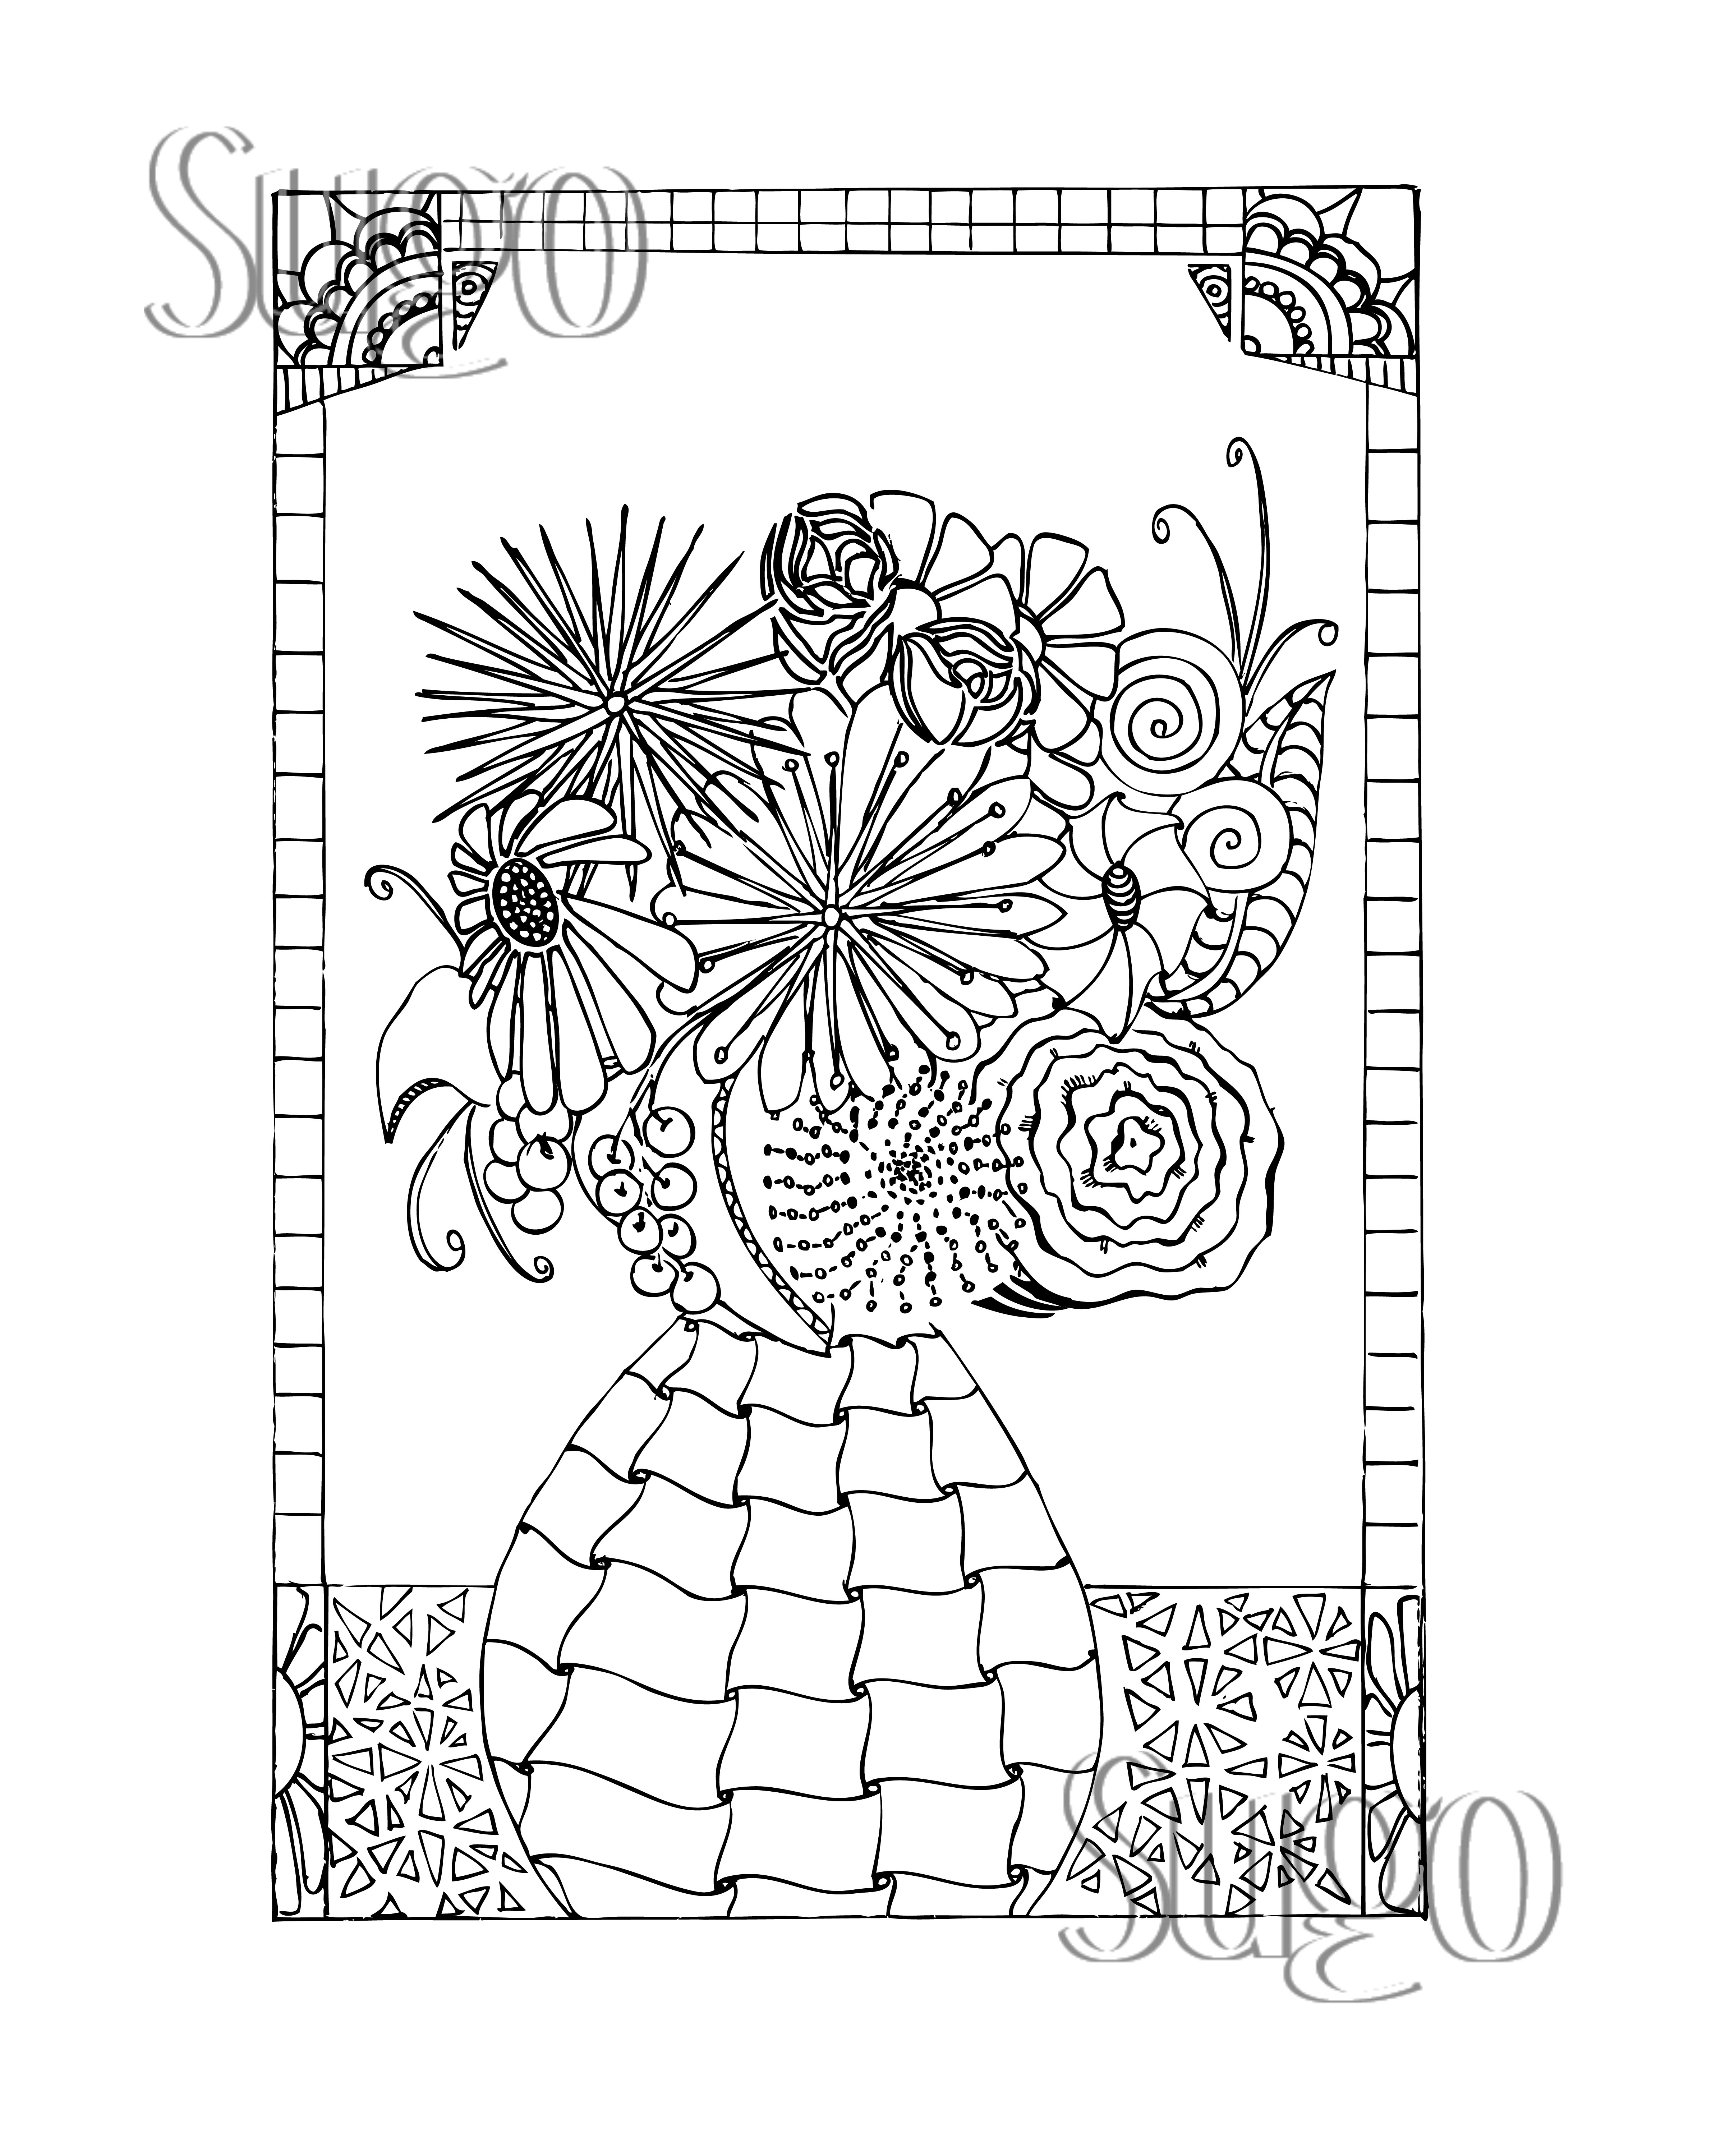 coloring pages of flowers in a vase - flower vase coloring pages